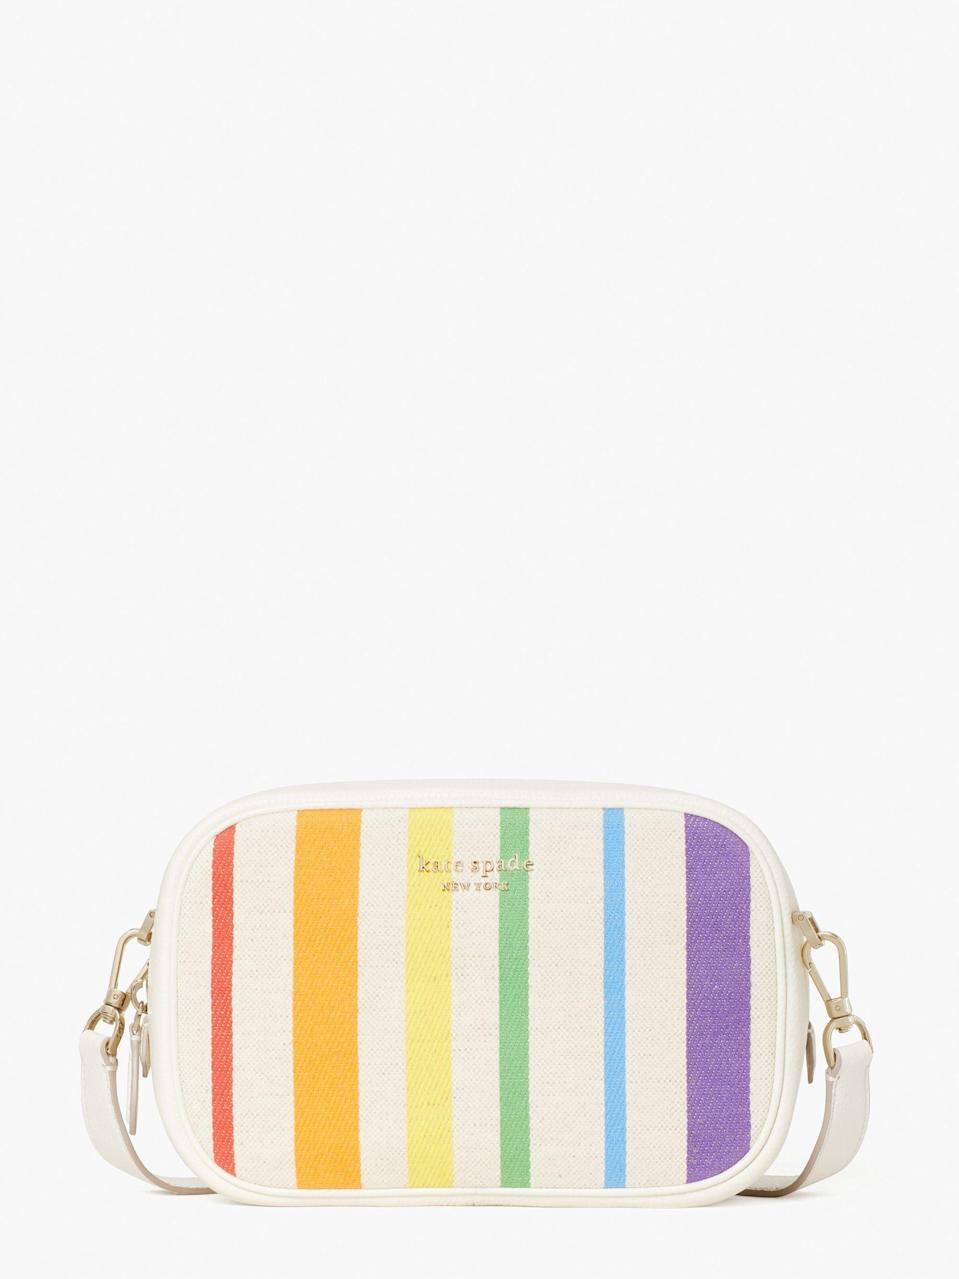 """<p><strong>Kate Spade</strong></p><p>katespade.com</p><p><strong>$198.00</strong></p><p><a href=""""https://go.redirectingat.com?id=74968X1596630&url=https%3A%2F%2Fwww.katespade.com%2Fproducts%2Frainbow-medium-camera-bag%2FPXR00526.html&sref=https%3A%2F%2Fwww.seventeen.com%2Flife%2Fg20195640%2Fgay-pride-clothing-lgtbq-friendly-companies%2F"""" rel=""""nofollow noopener"""" target=""""_blank"""" data-ylk=""""slk:Shop Now"""" class=""""link rapid-noclick-resp"""">Shop Now</a></p><p>In celebration of Pride month 2021, Kate Spade will donate 20% of profits from their <strong><a href=""""https://go.redirectingat.com?id=74968X1596630&url=https%3A%2F%2Fwww.katespade.com%2Fsearch%3Fq%3Drainbow%26srule%3Dfunnel-search&sref=https%3A%2F%2Fwww.seventeen.com%2Flife%2Fg20195640%2Fgay-pride-clothing-lgtbq-friendly-companies%2F"""" rel=""""nofollow noopener"""" target=""""_blank"""" data-ylk=""""slk:Rainbow Collection"""" class=""""link rapid-noclick-resp"""">Rainbow Collection</a> to <a href=""""https://give.thetrevorproject.org/give/63307/#!/donation/checkout?"""" rel=""""nofollow noopener"""" target=""""_blank"""" data-ylk=""""slk:The Trevor Project"""" class=""""link rapid-noclick-resp"""">The Trevor Project</a>.</strong></p>"""